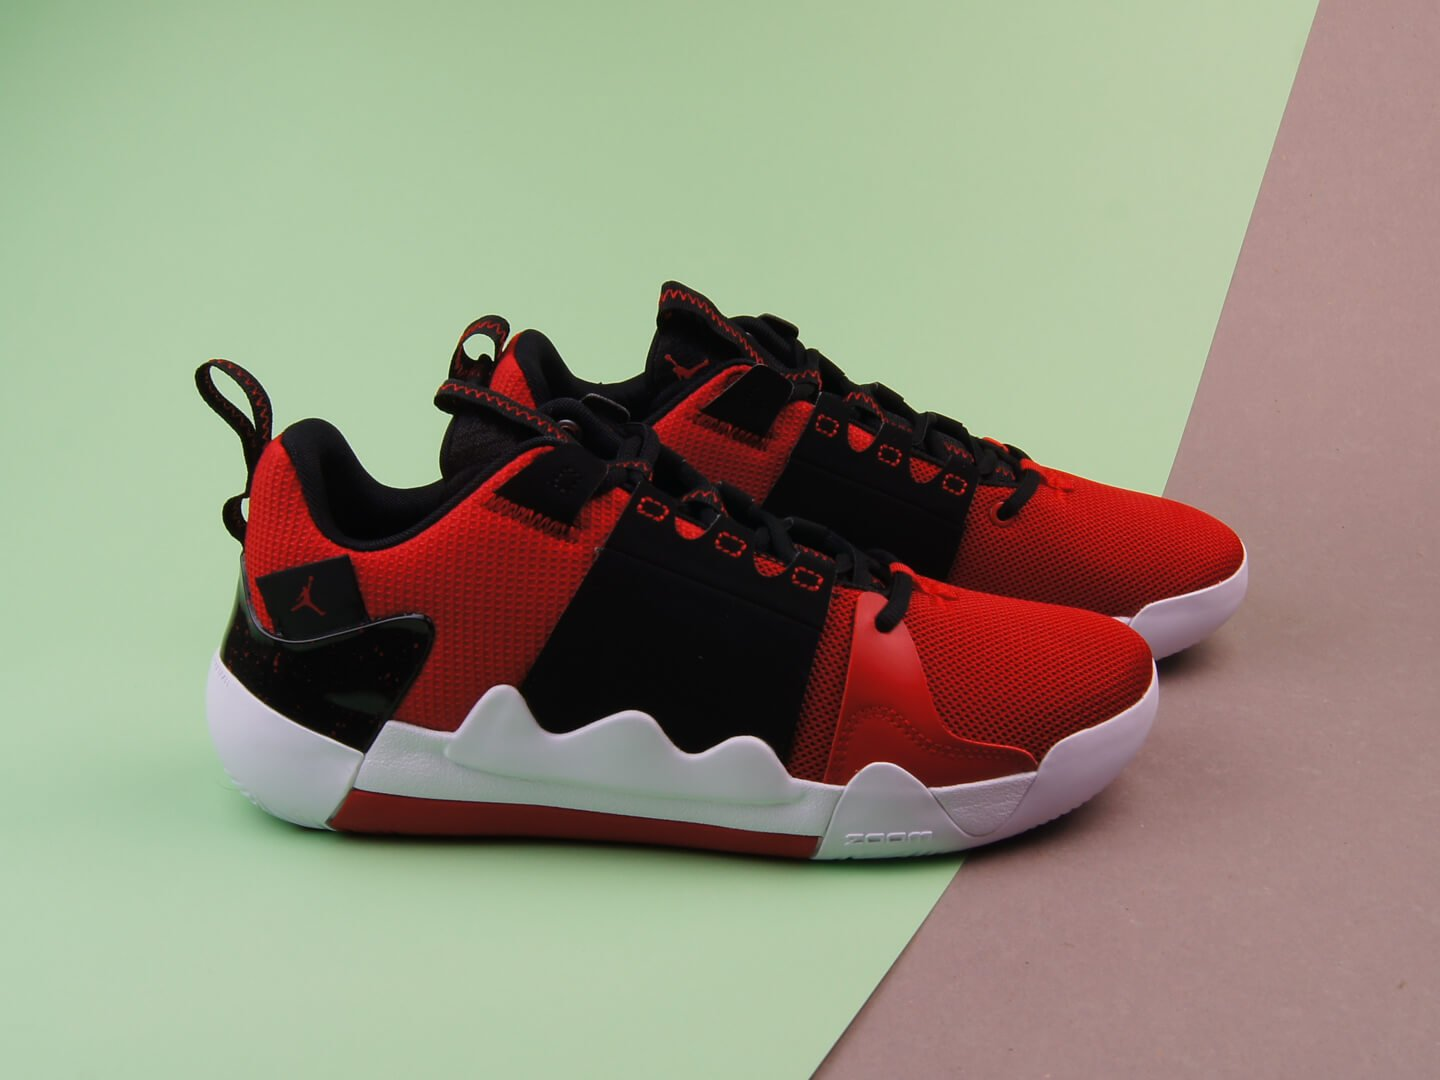 Кроссовки Jordan Zoom Zero Gravity / red, black